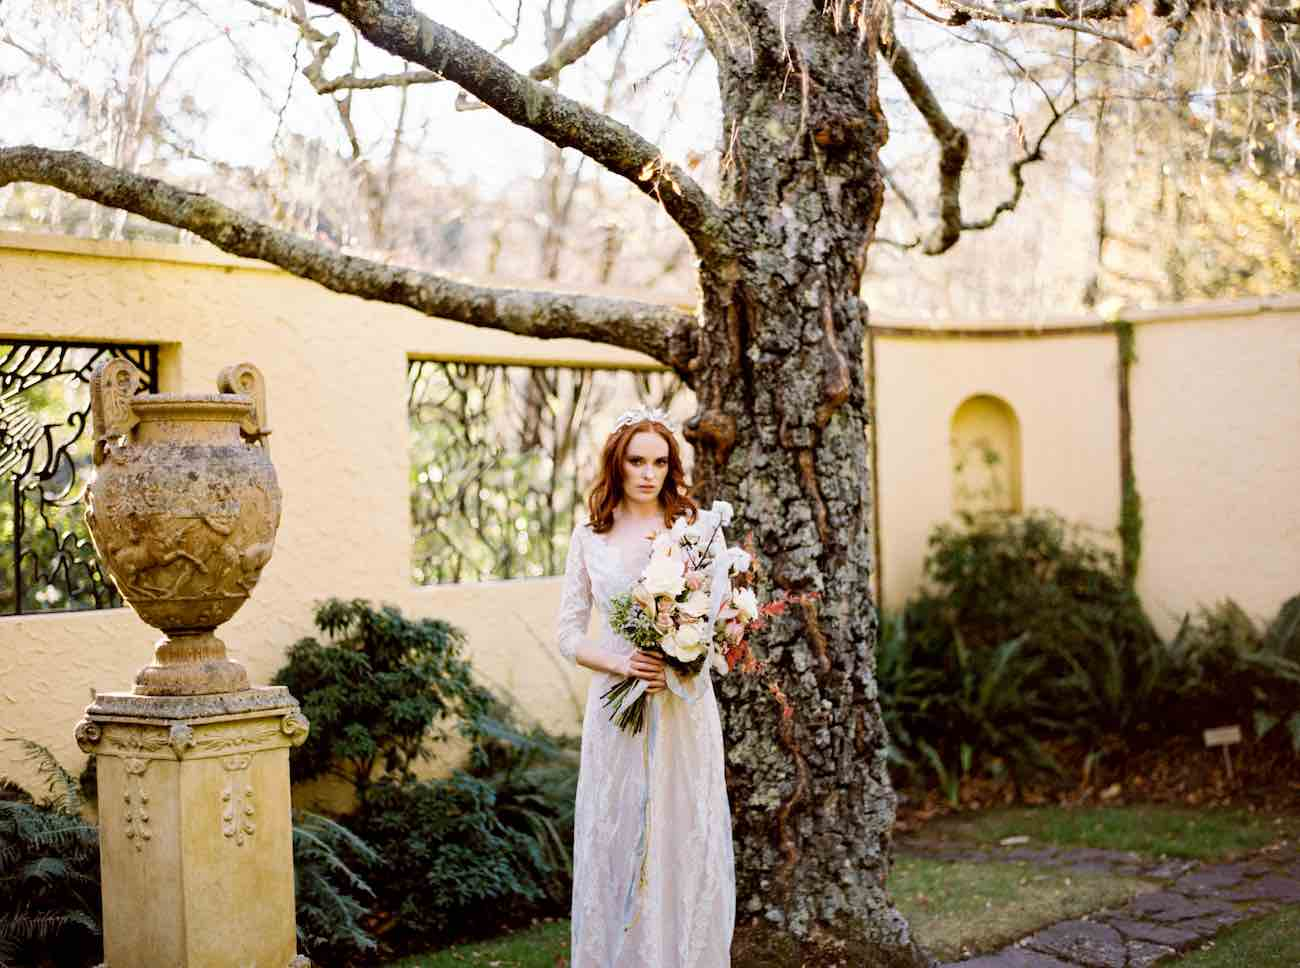 Delicately Divine Autumn Bride Inspiration in the Everglades by Bride La Boheme